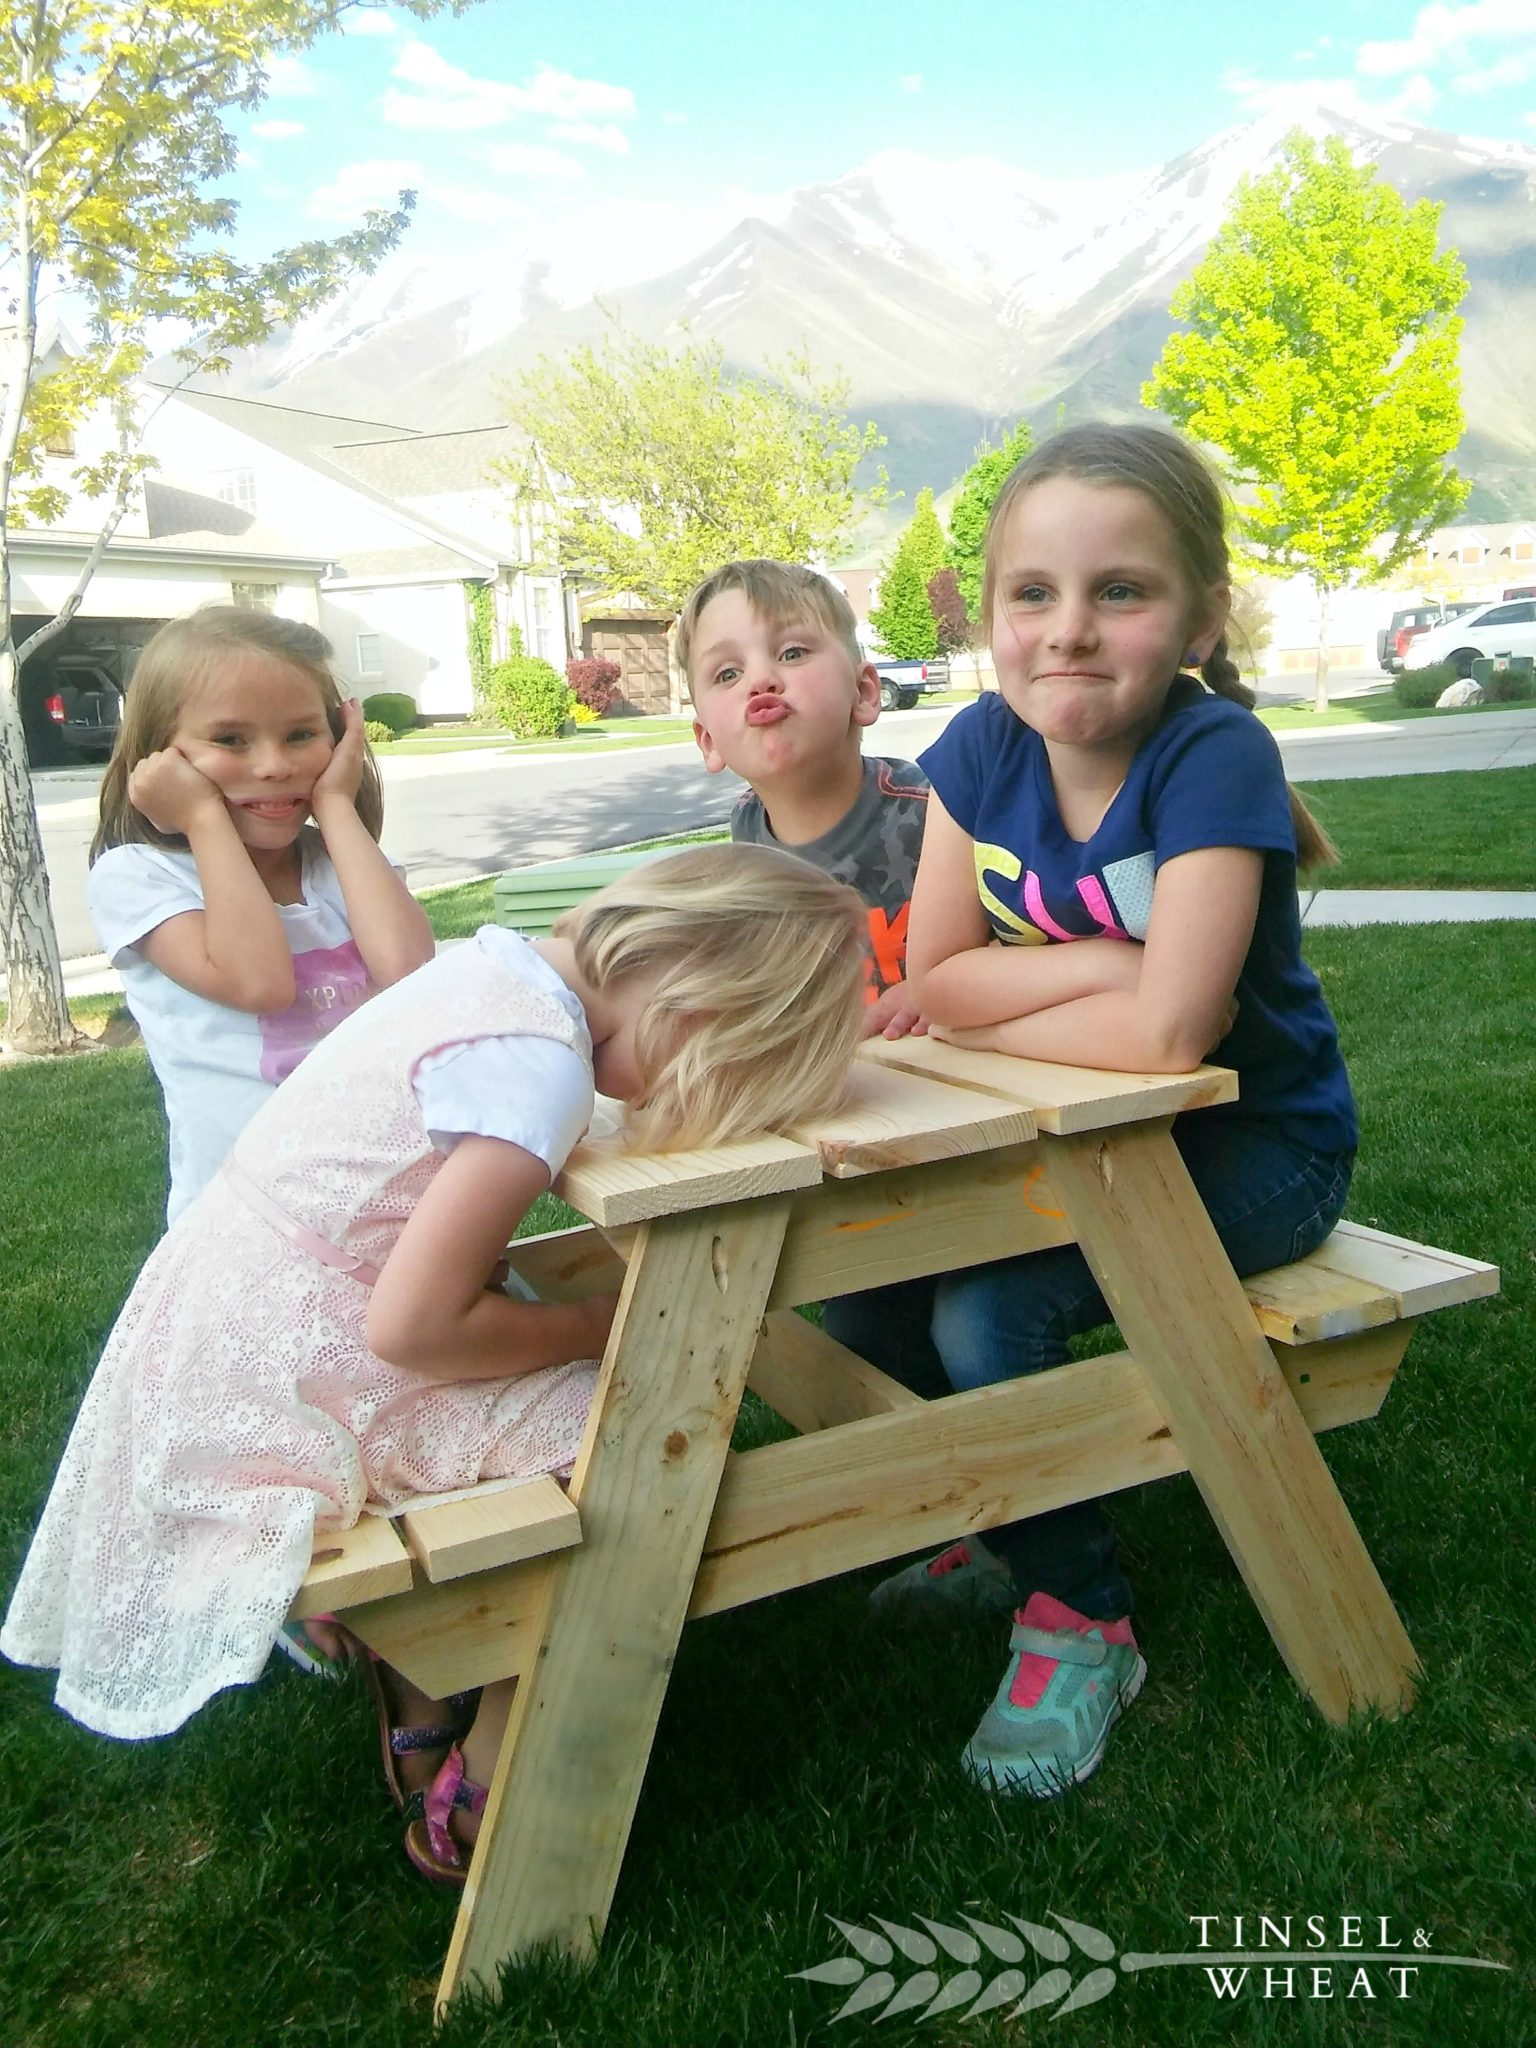 DIY Kids Picnic Table Plans From Anna White Tinsel Wheat - Ready to assemble picnic table